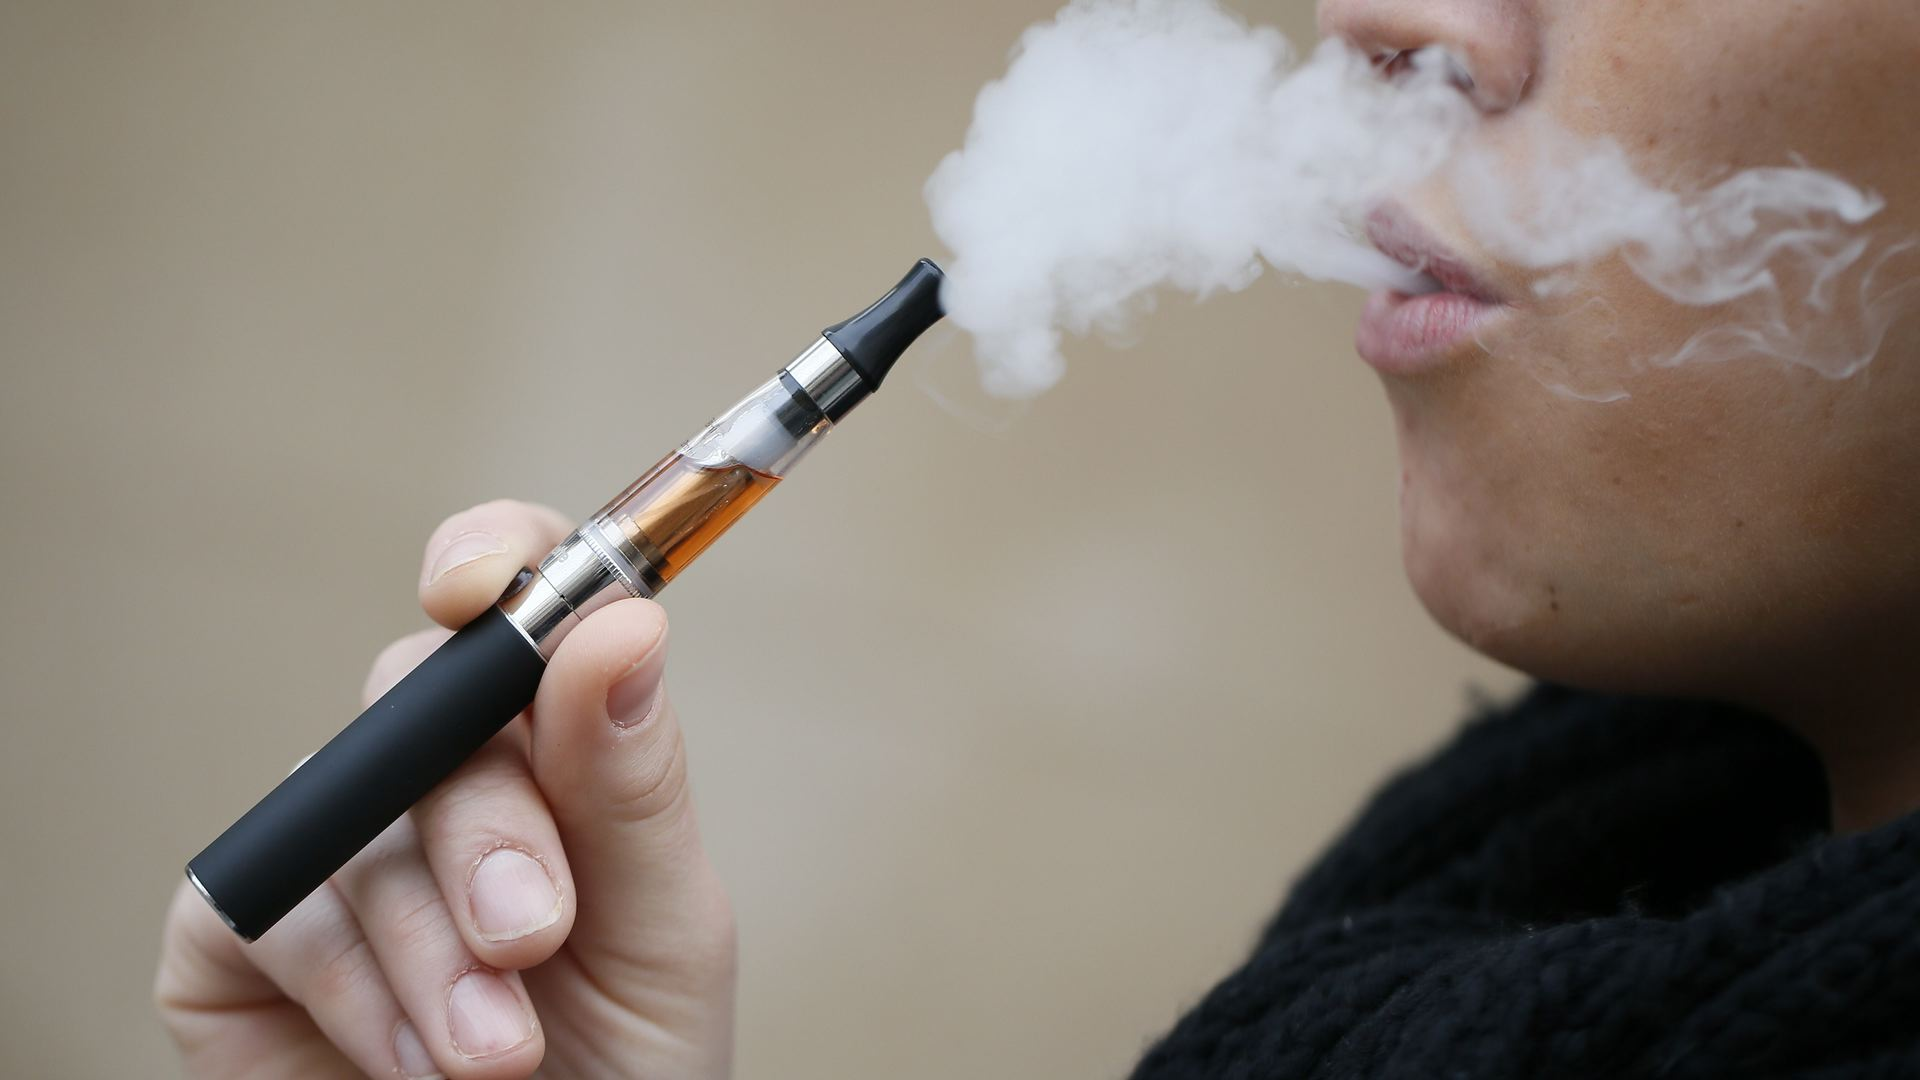 Why Vaping May Be More Dangerous Than Cigarettes